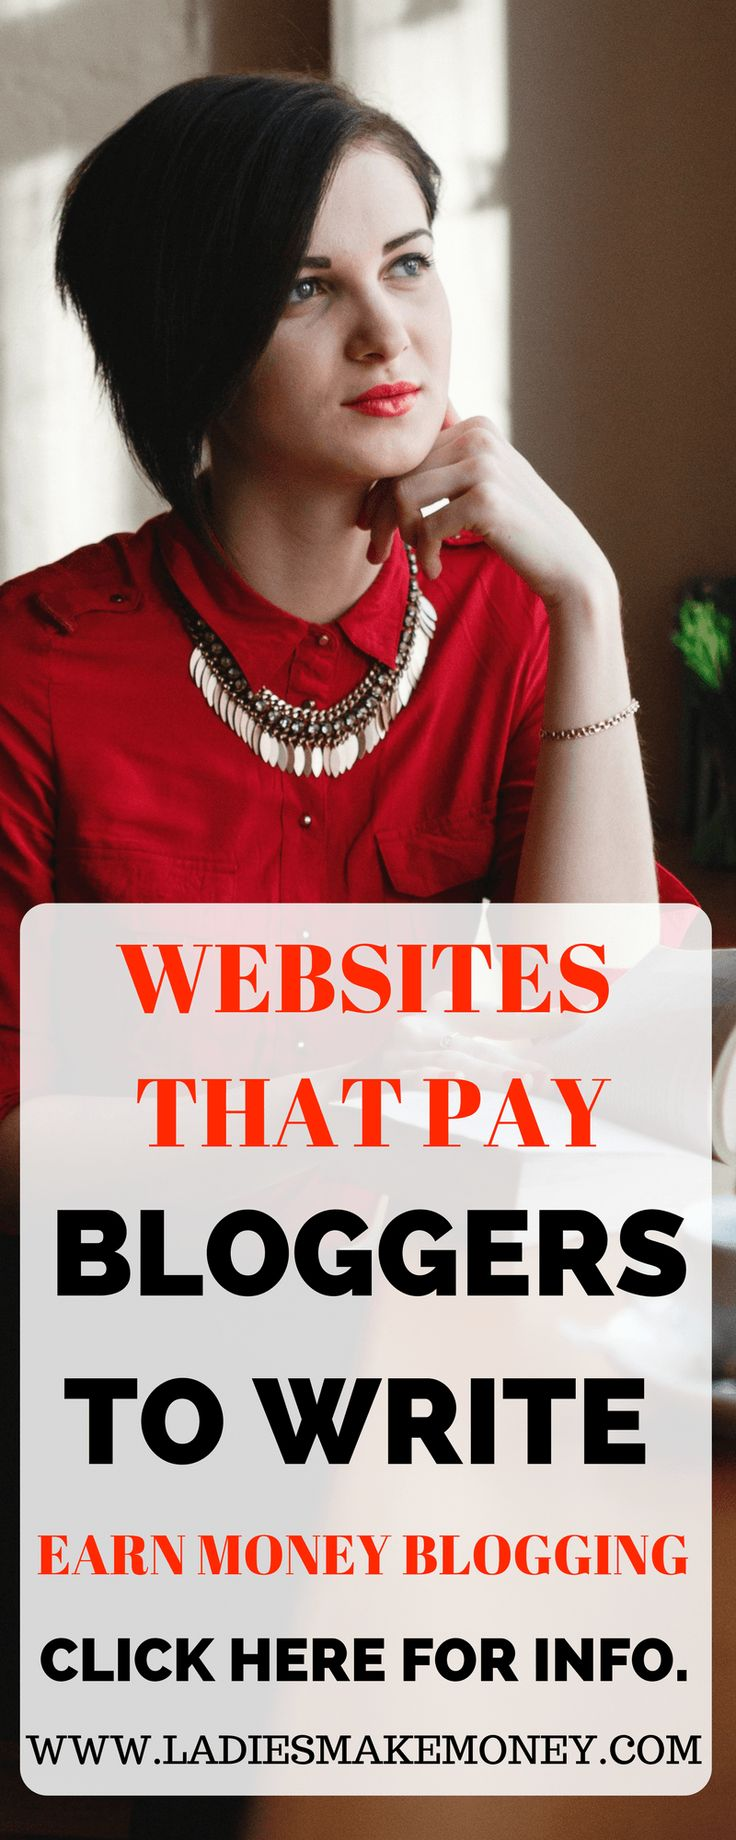 Companies And Websites That Pay For Your Writing - Make for Money Blogging - Passive Income - Affiliates - Content - Social Media - Management - SEO - Promote | Freelance blogger, get paid to write. How to make money as a freelance blogger. Here are 5 places to find freelance work for bloggers. Freelance writer, copy writer and blogger for hire. Freelance blogger jobs, freelance blogging jobs for beginners, Blog writing jobs from home, blogging jobs from home, hire a freelance...